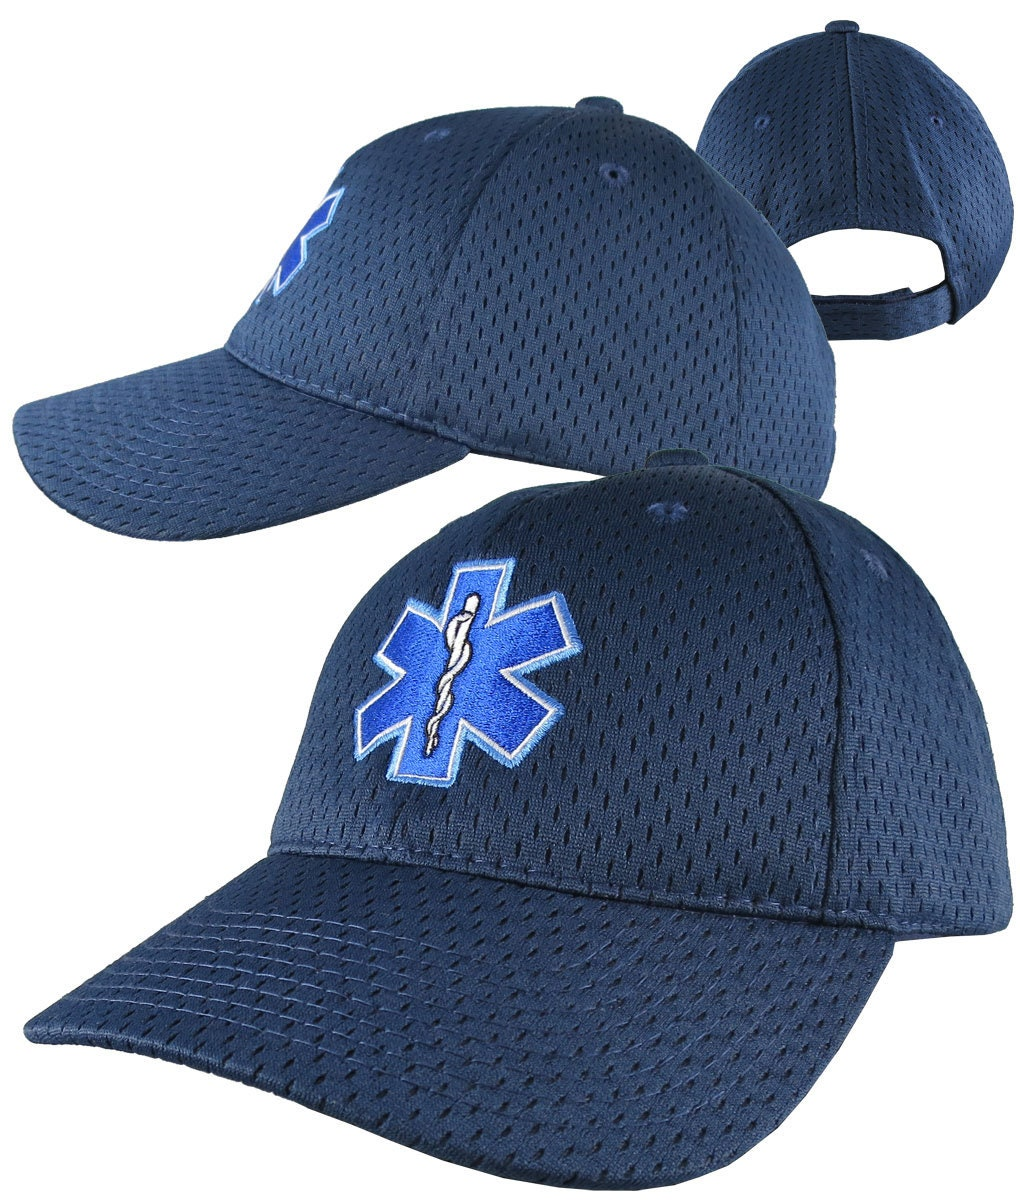 03b35494a74 Paramedic EMT EMS Star of Life Embroidery on Adjustable Navy Blue  Structured Premium Baseball Cap with Options to Personalize Two Locations